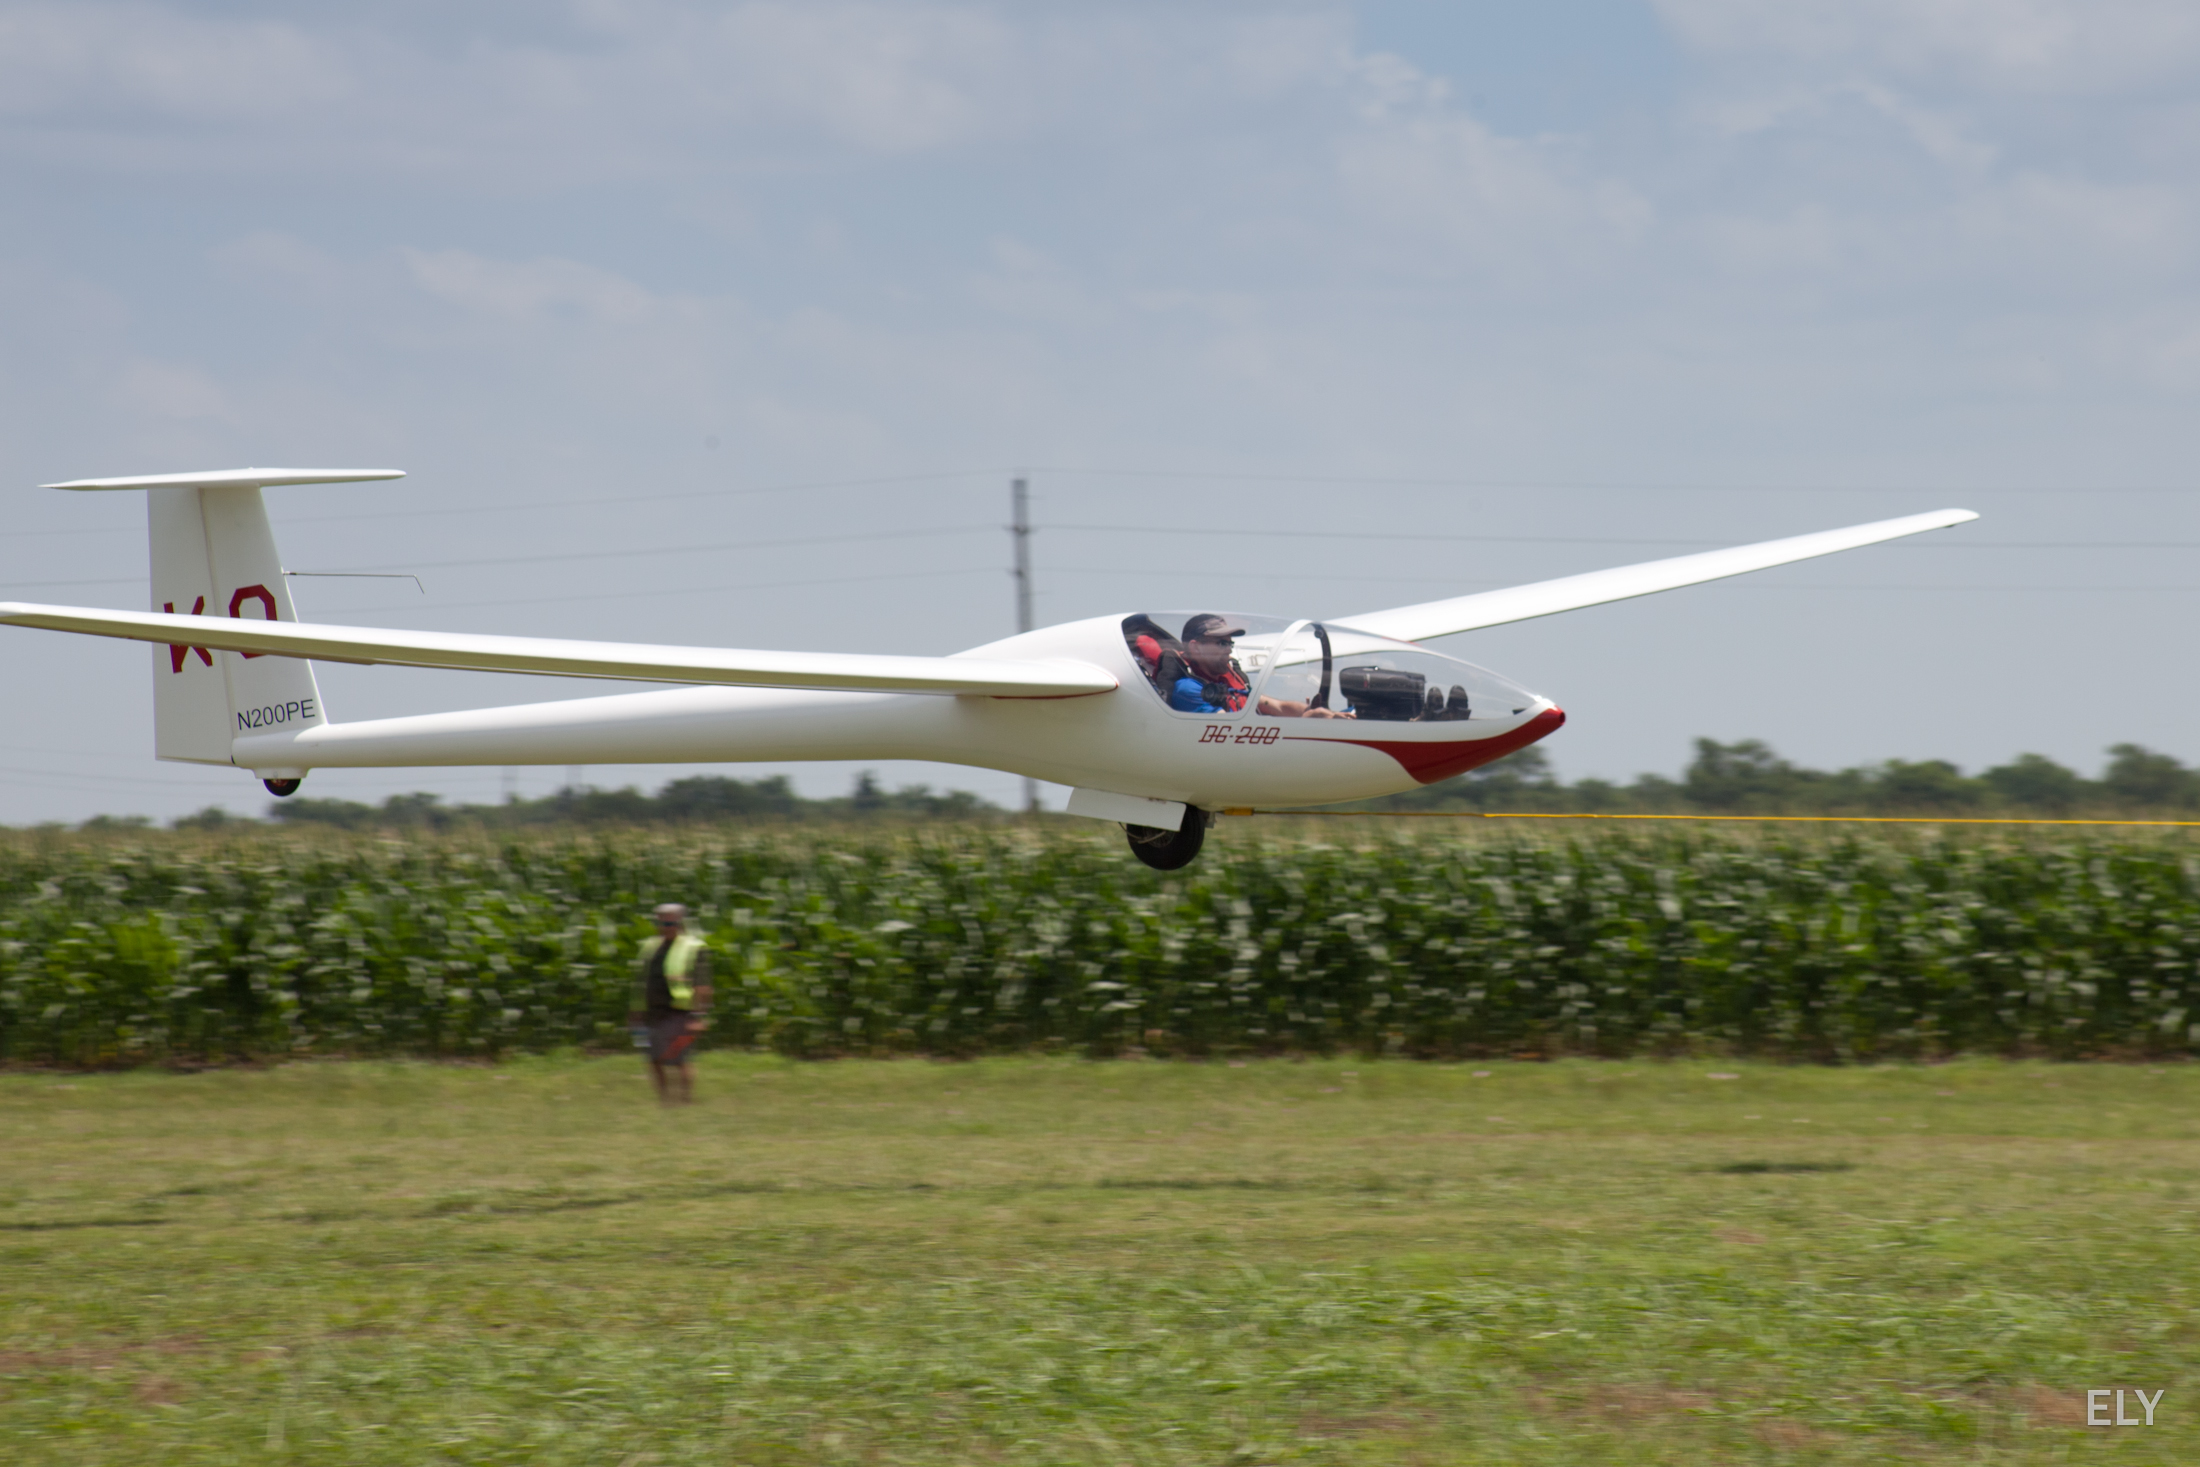 Todd in a DG-200 15m sailplane during a soaring event at GHSA in May, 2019. Photo by Osvaldo Bins Ely.